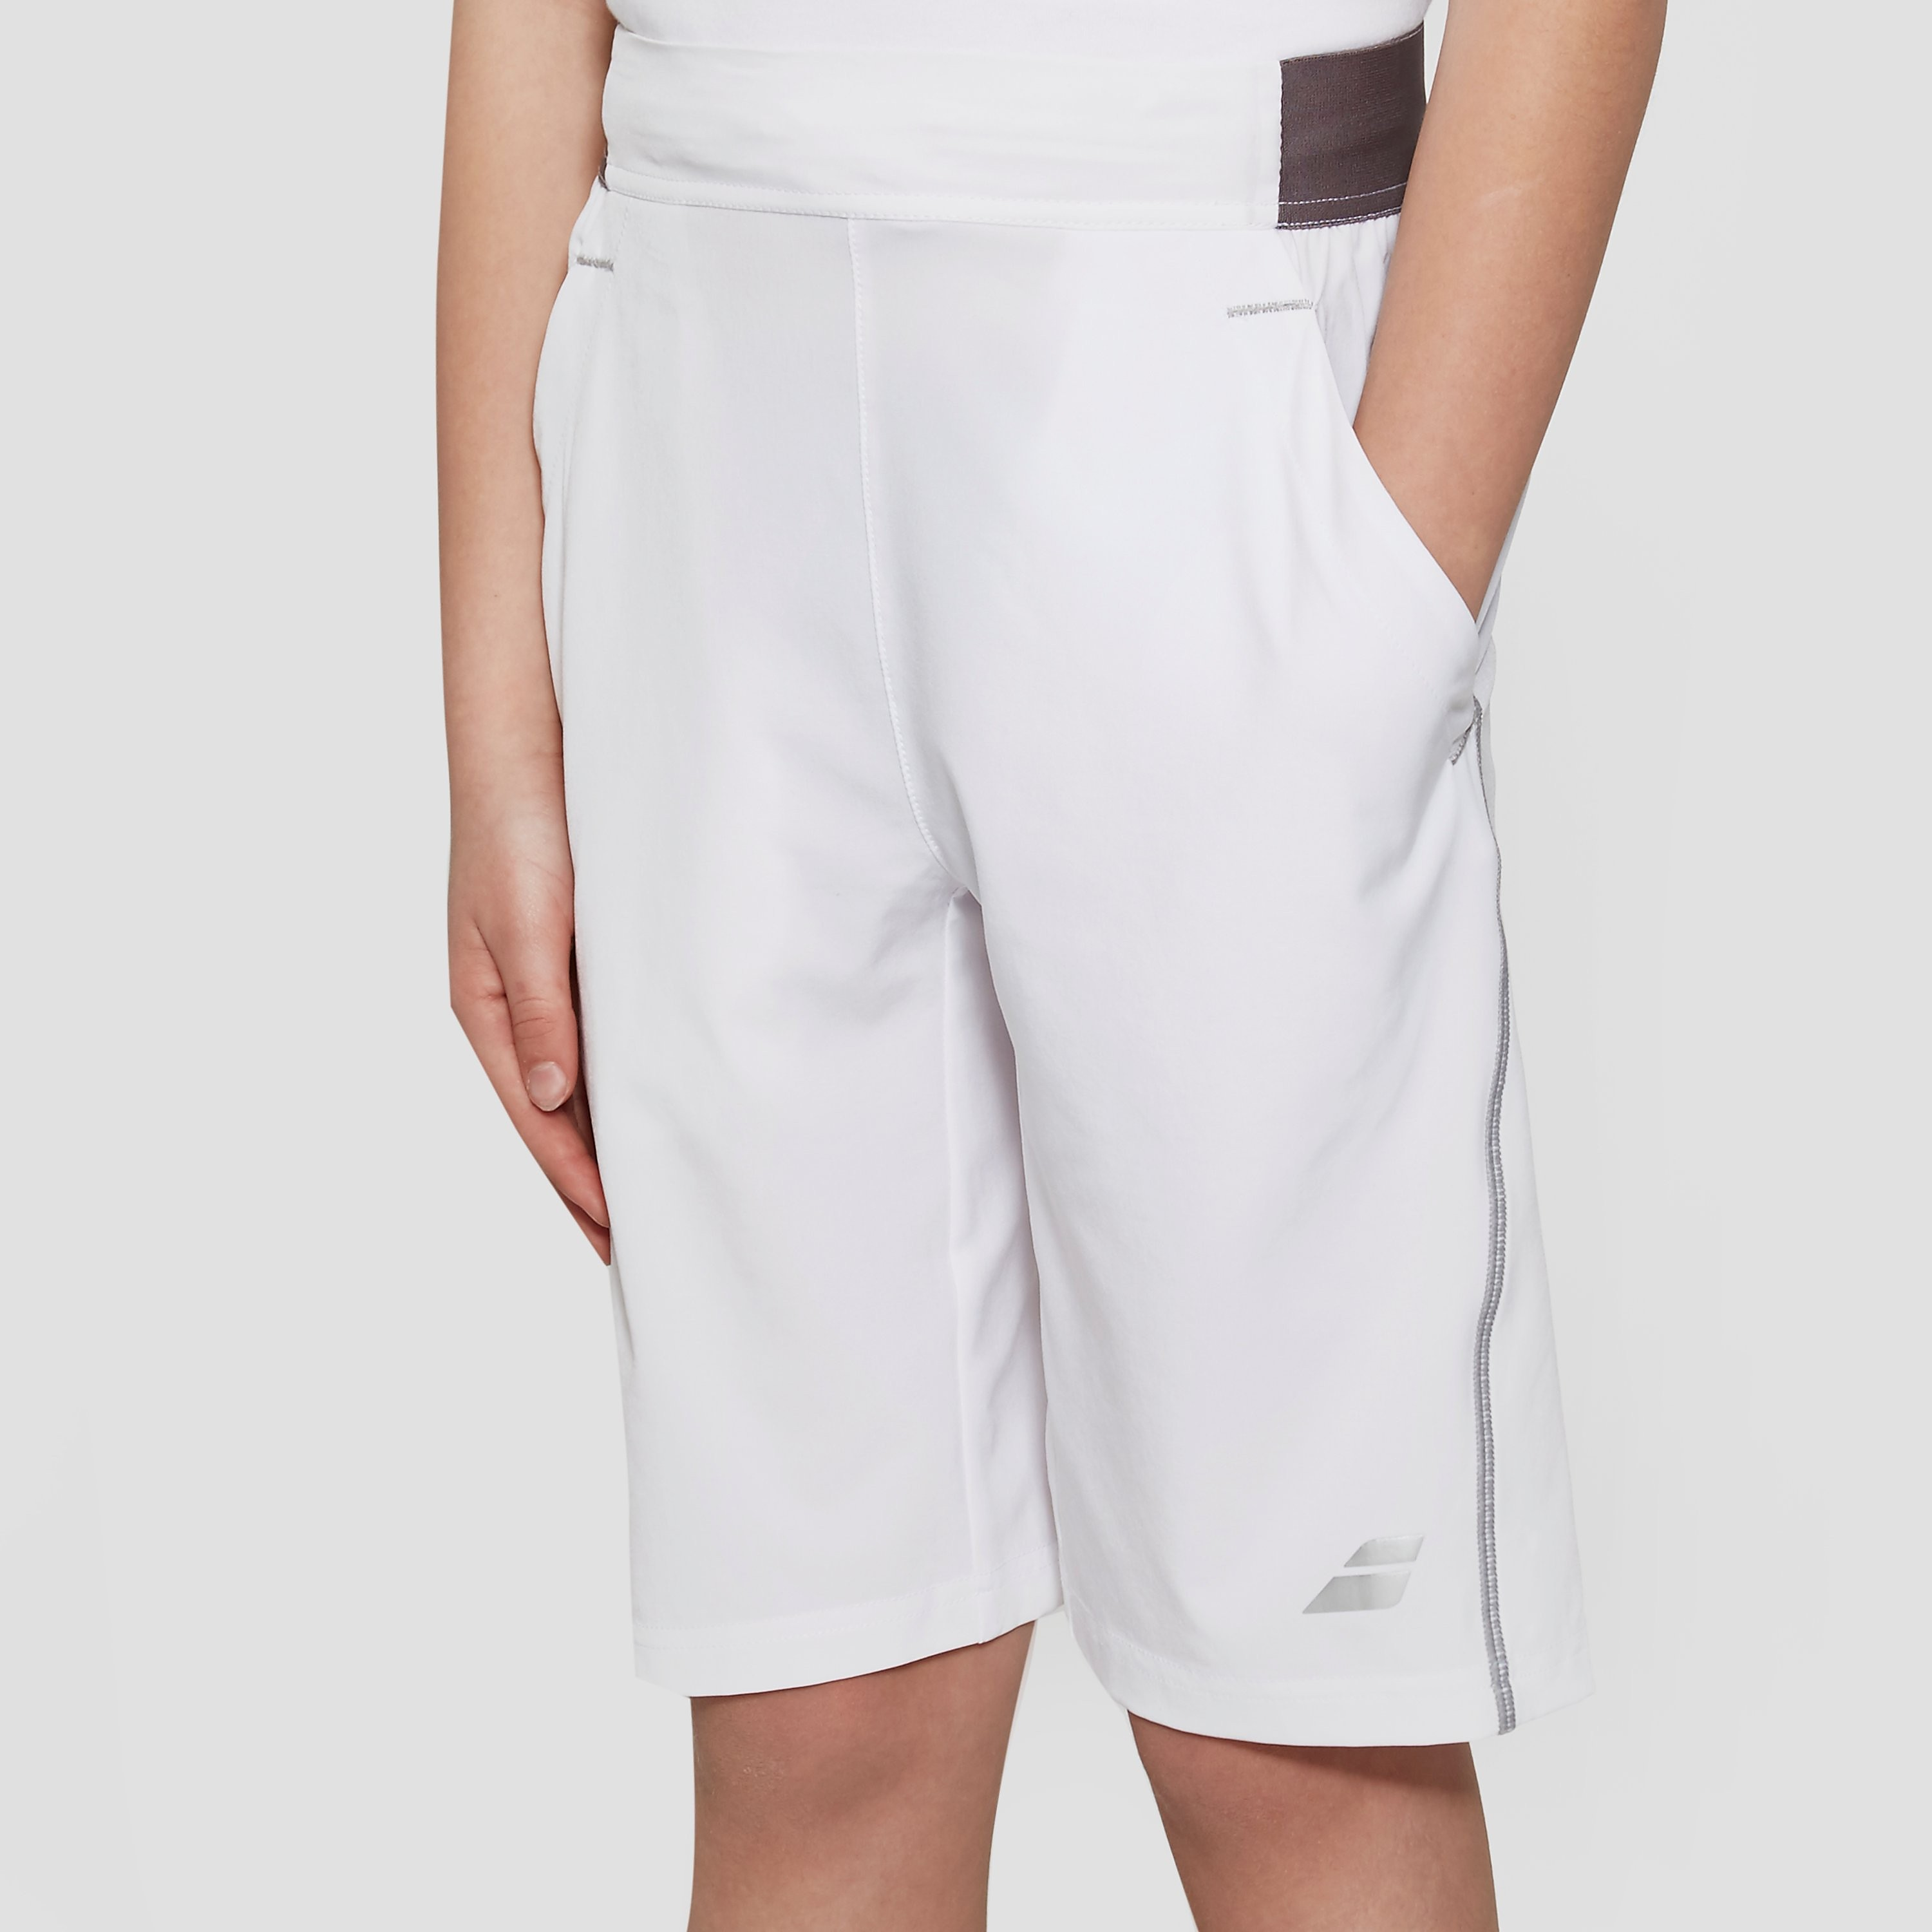 Babolat X LONG PERFORMANCE JUNIOR TENNIS SHORTS